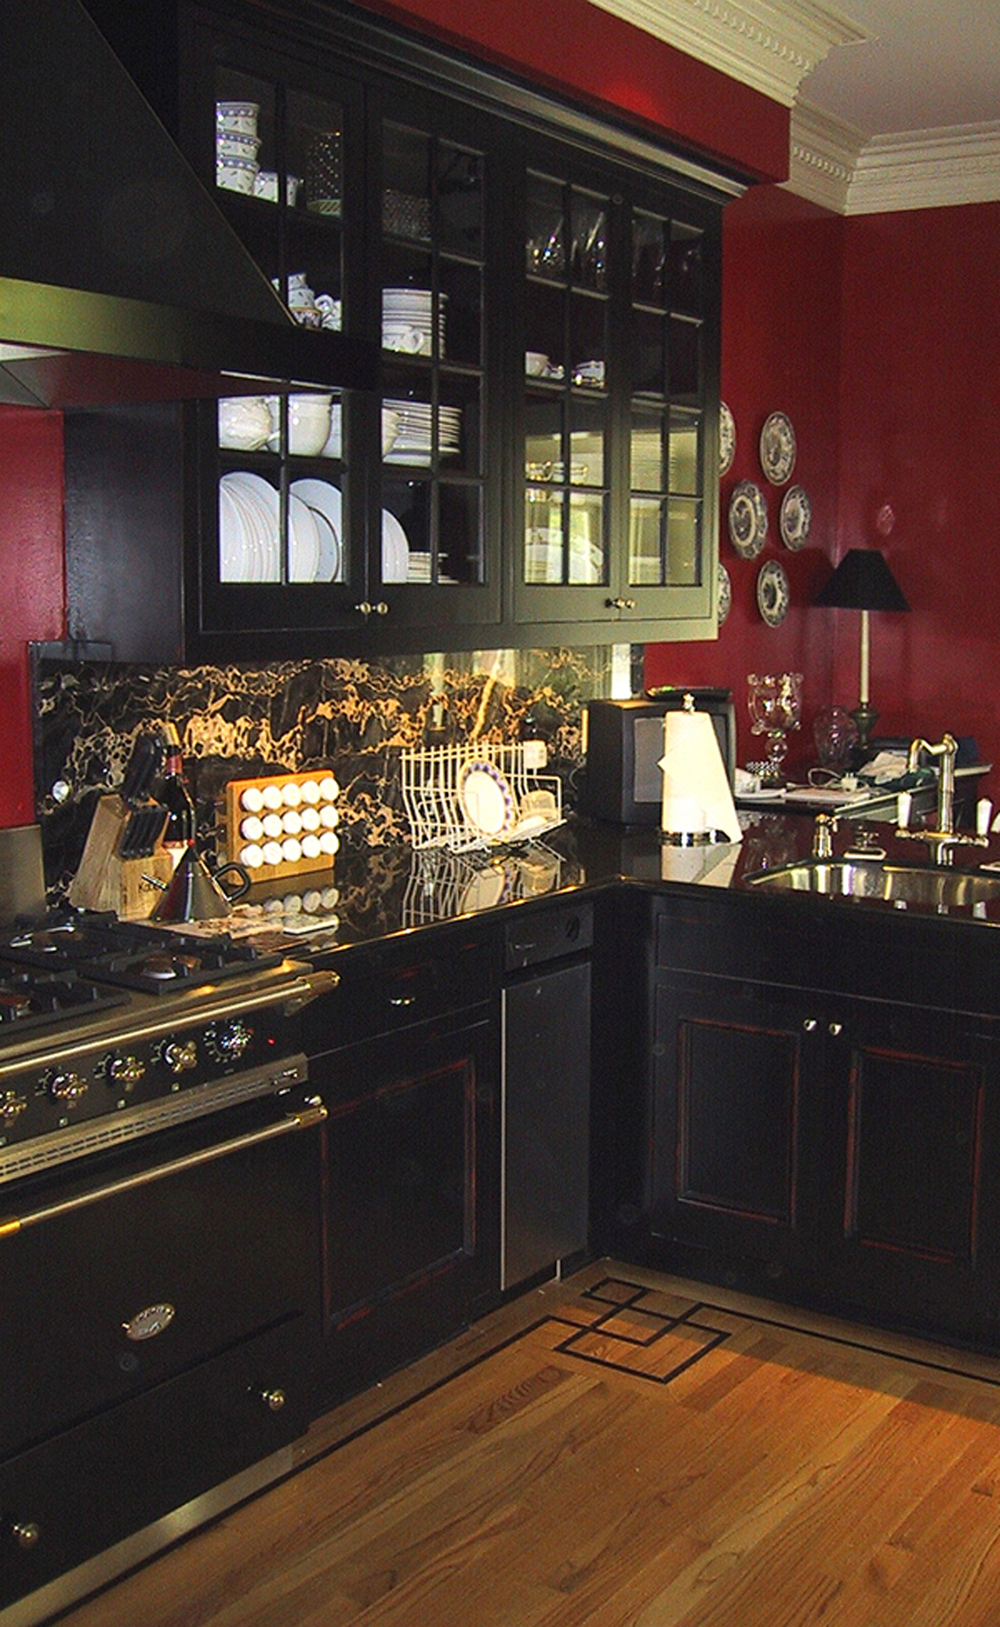 4 - 2127 Kitchen.jpg